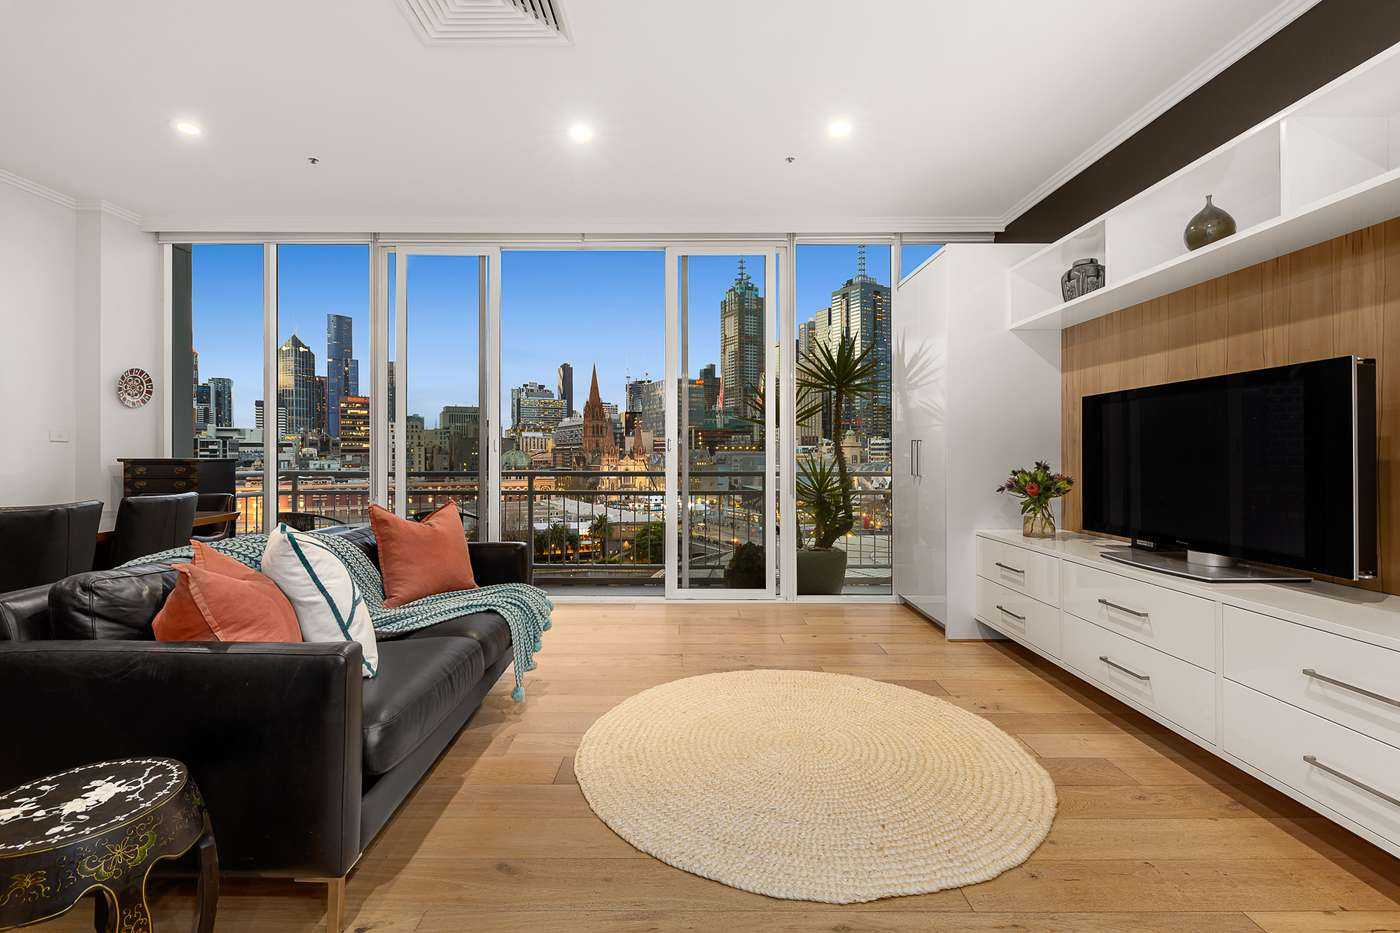 Main view of Homely apartment listing, 83/28 Southgate Avenue, Southbank, VIC 3006